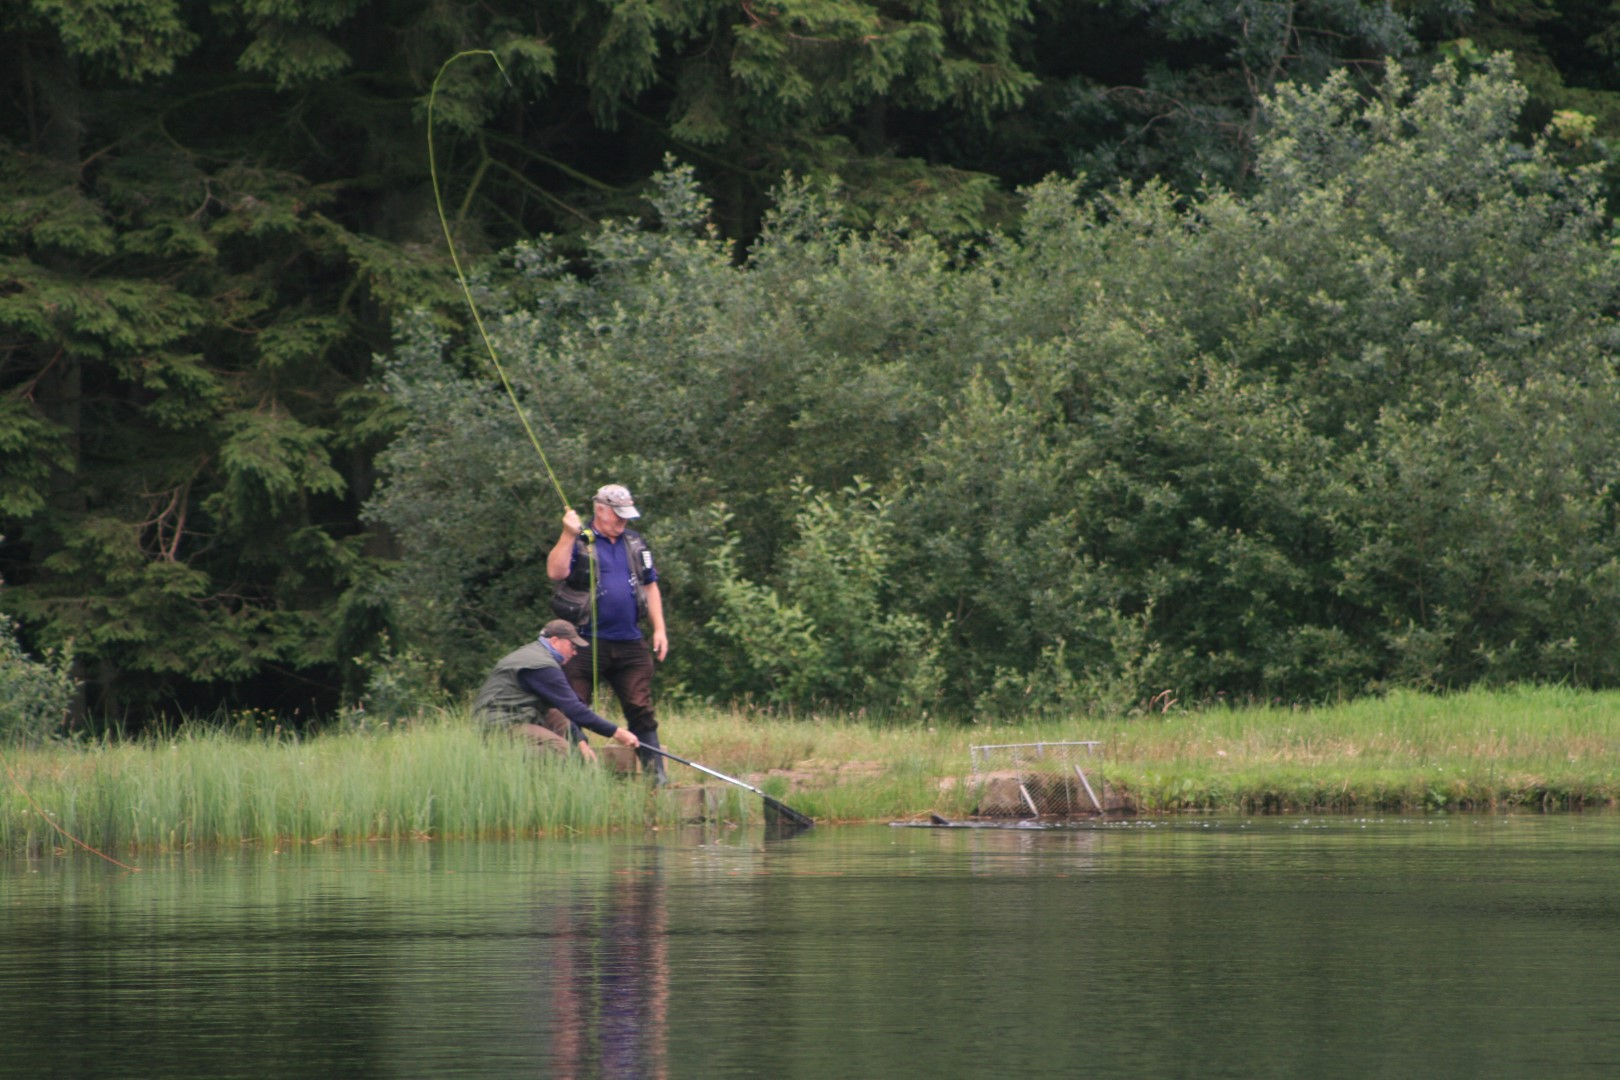 Two men fly fishing, one with a net, the other with a rod